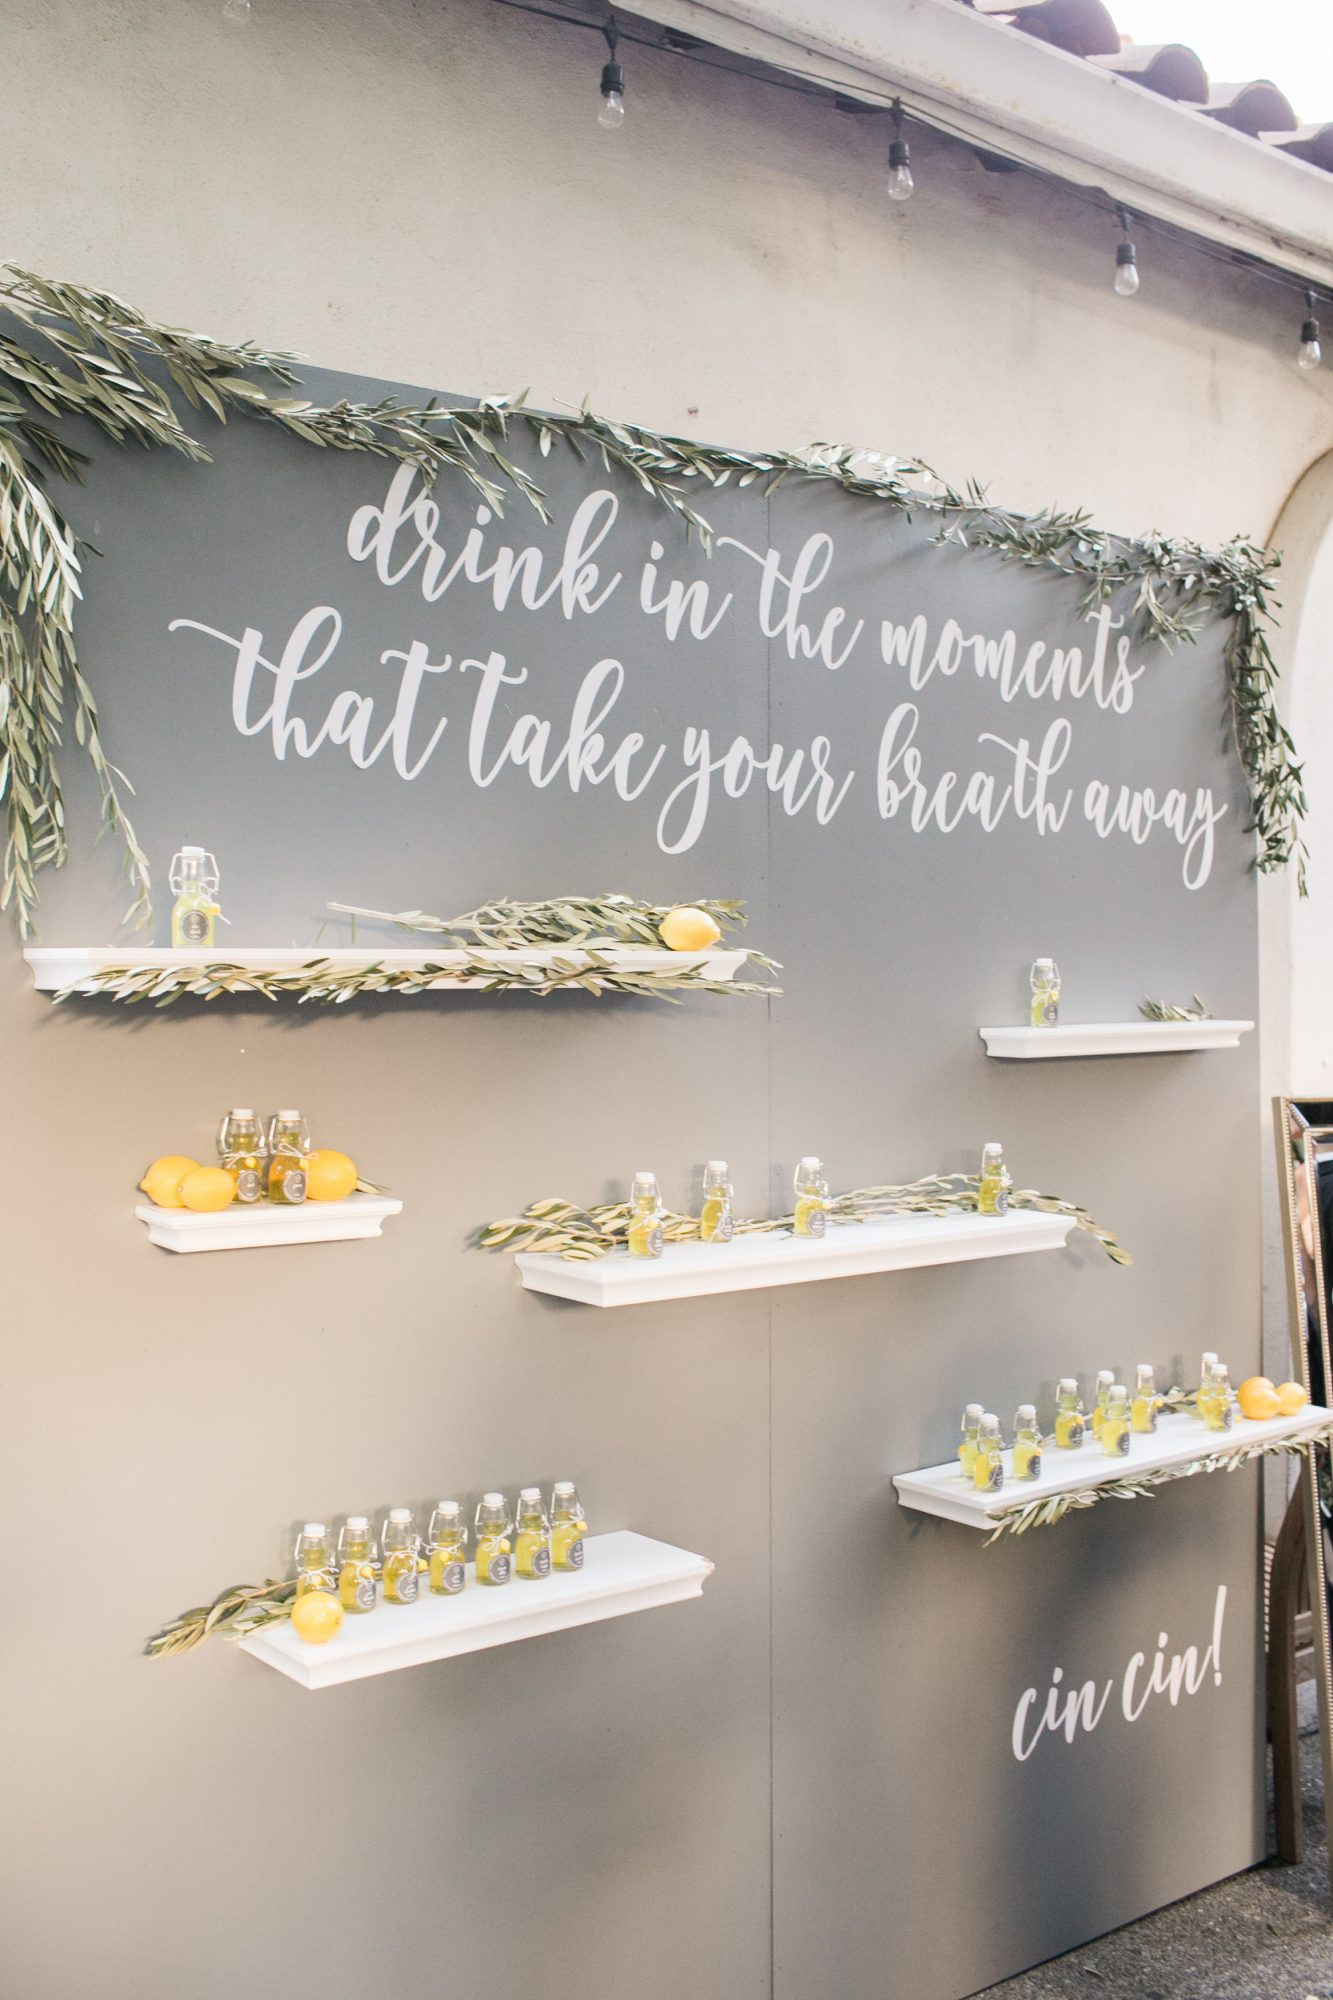 favor display with quote